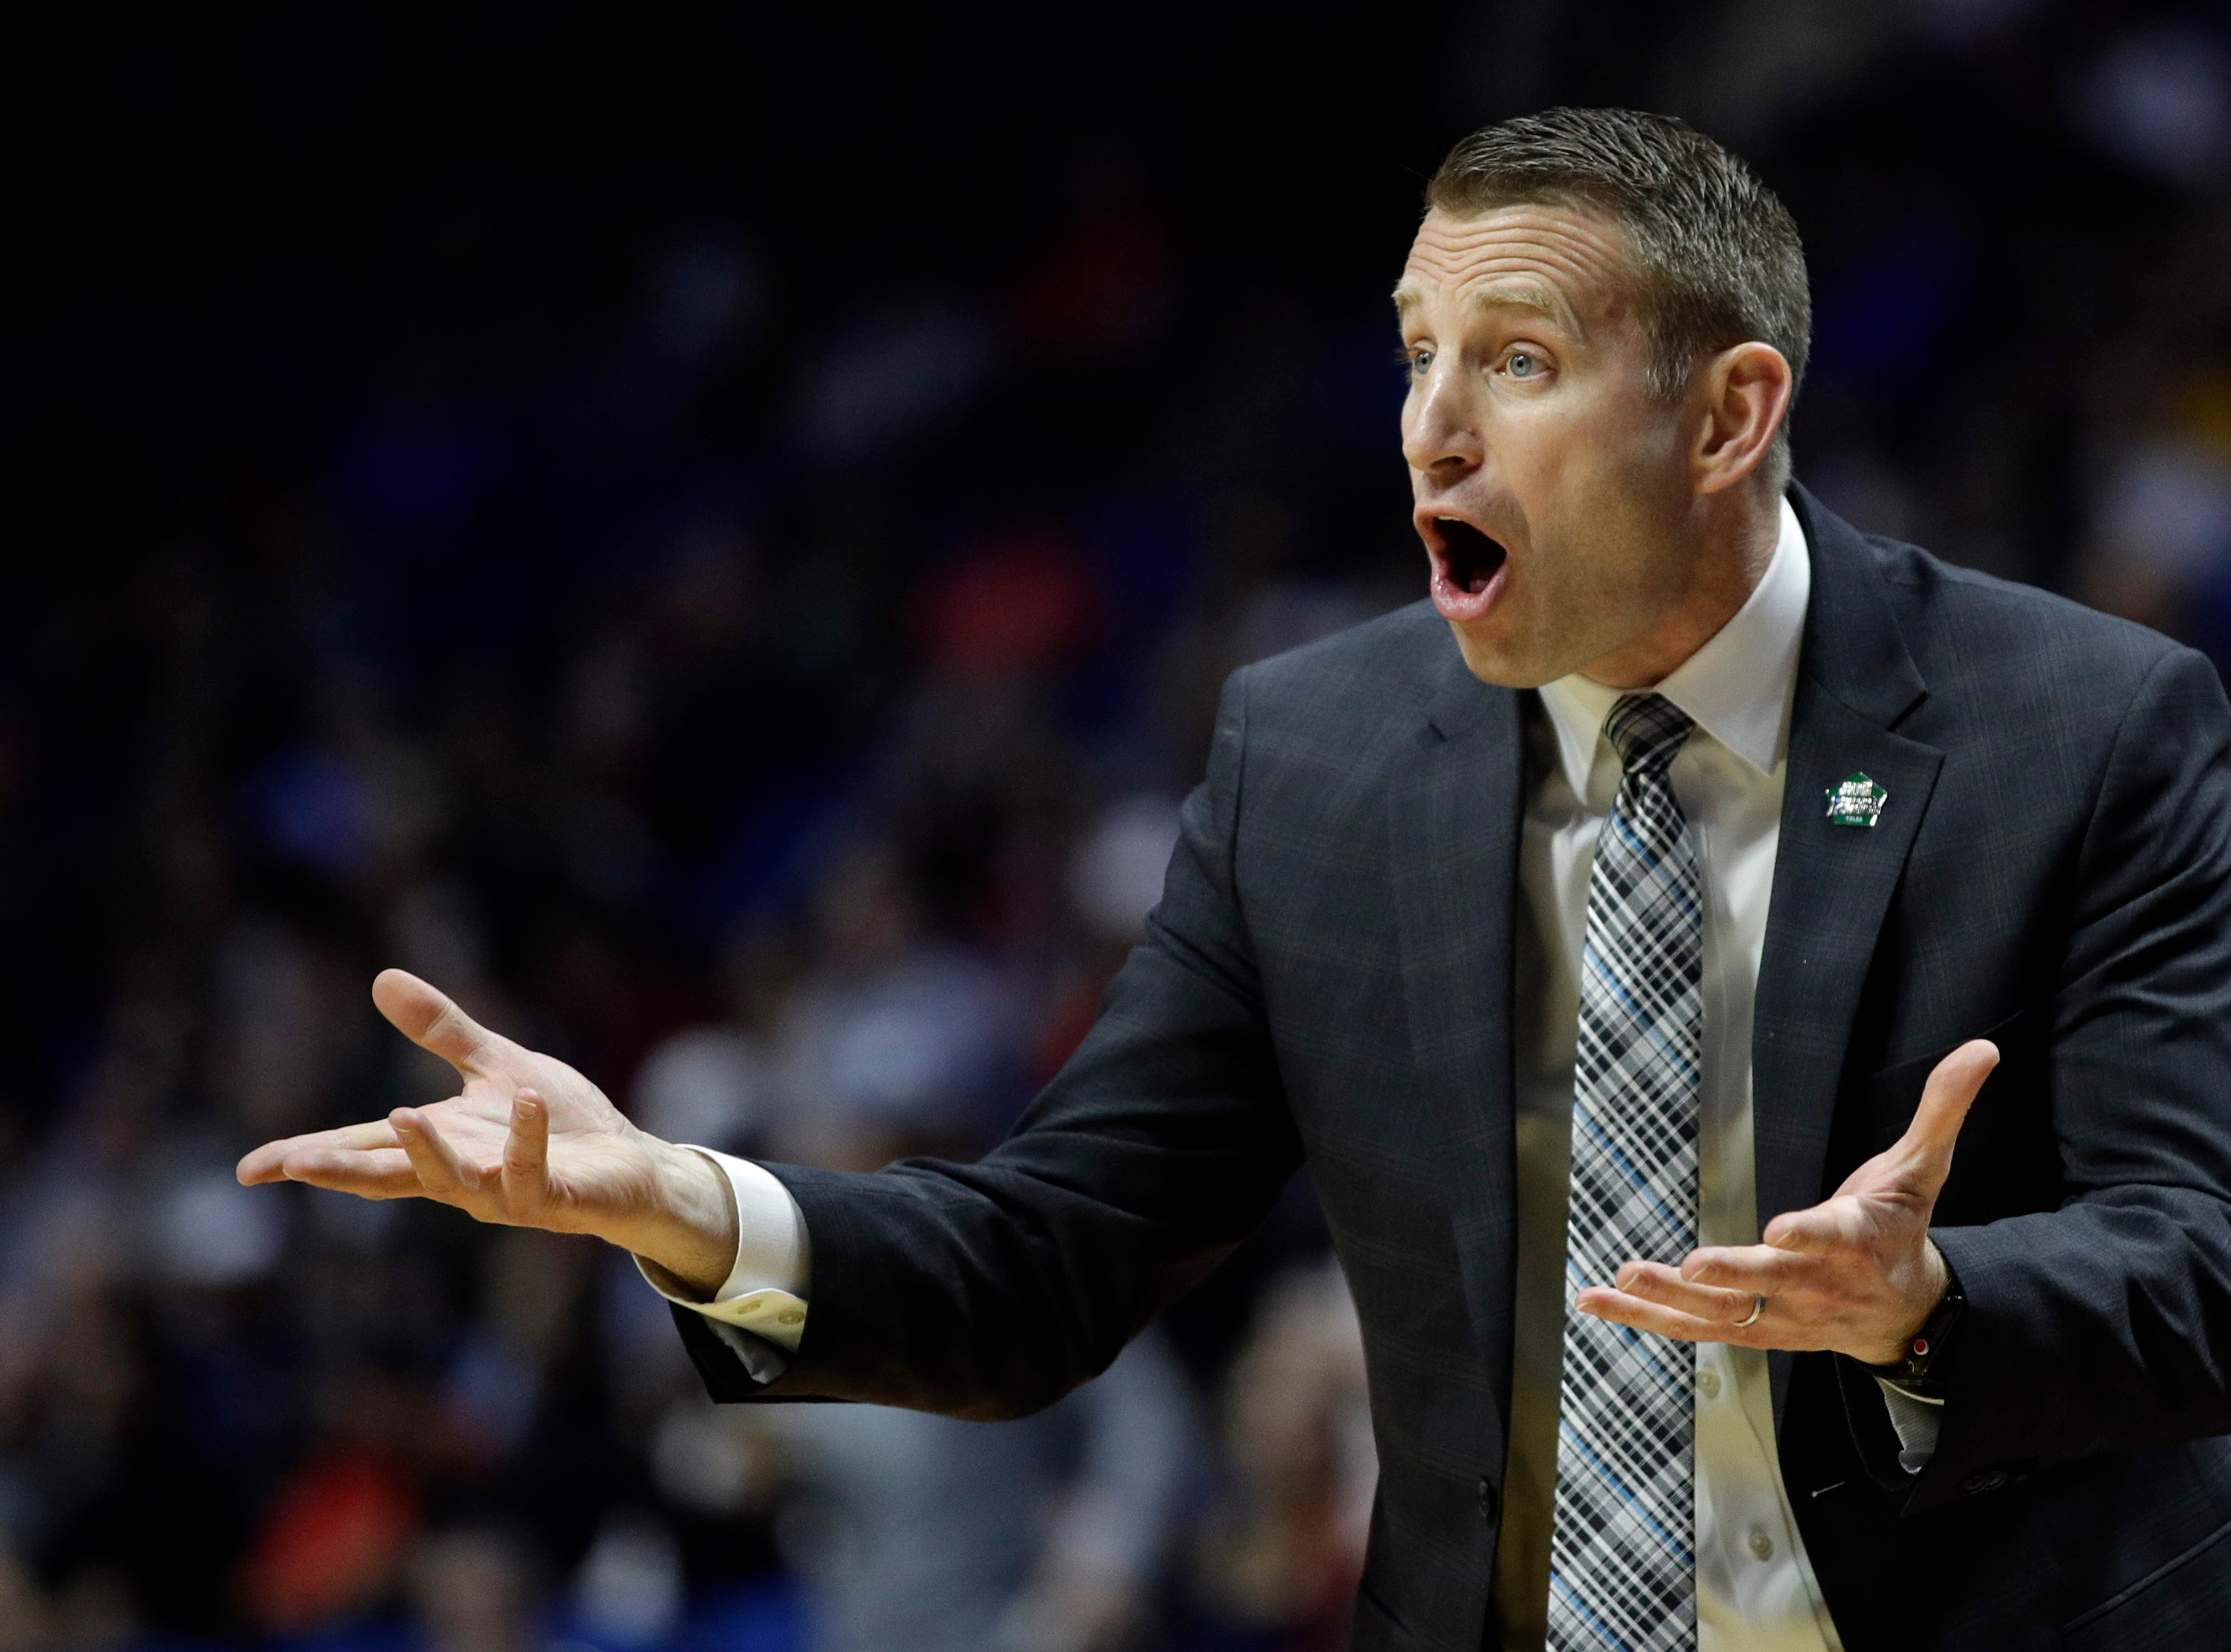 Buffalo head coach Nate Oats talks to his players during the first half of a first round men's college basketball game against Arizona State in the NCAA Tournament Friday, March 22, 2019, in Tulsa, Okla. (AP Photo/Charlie Riedel)